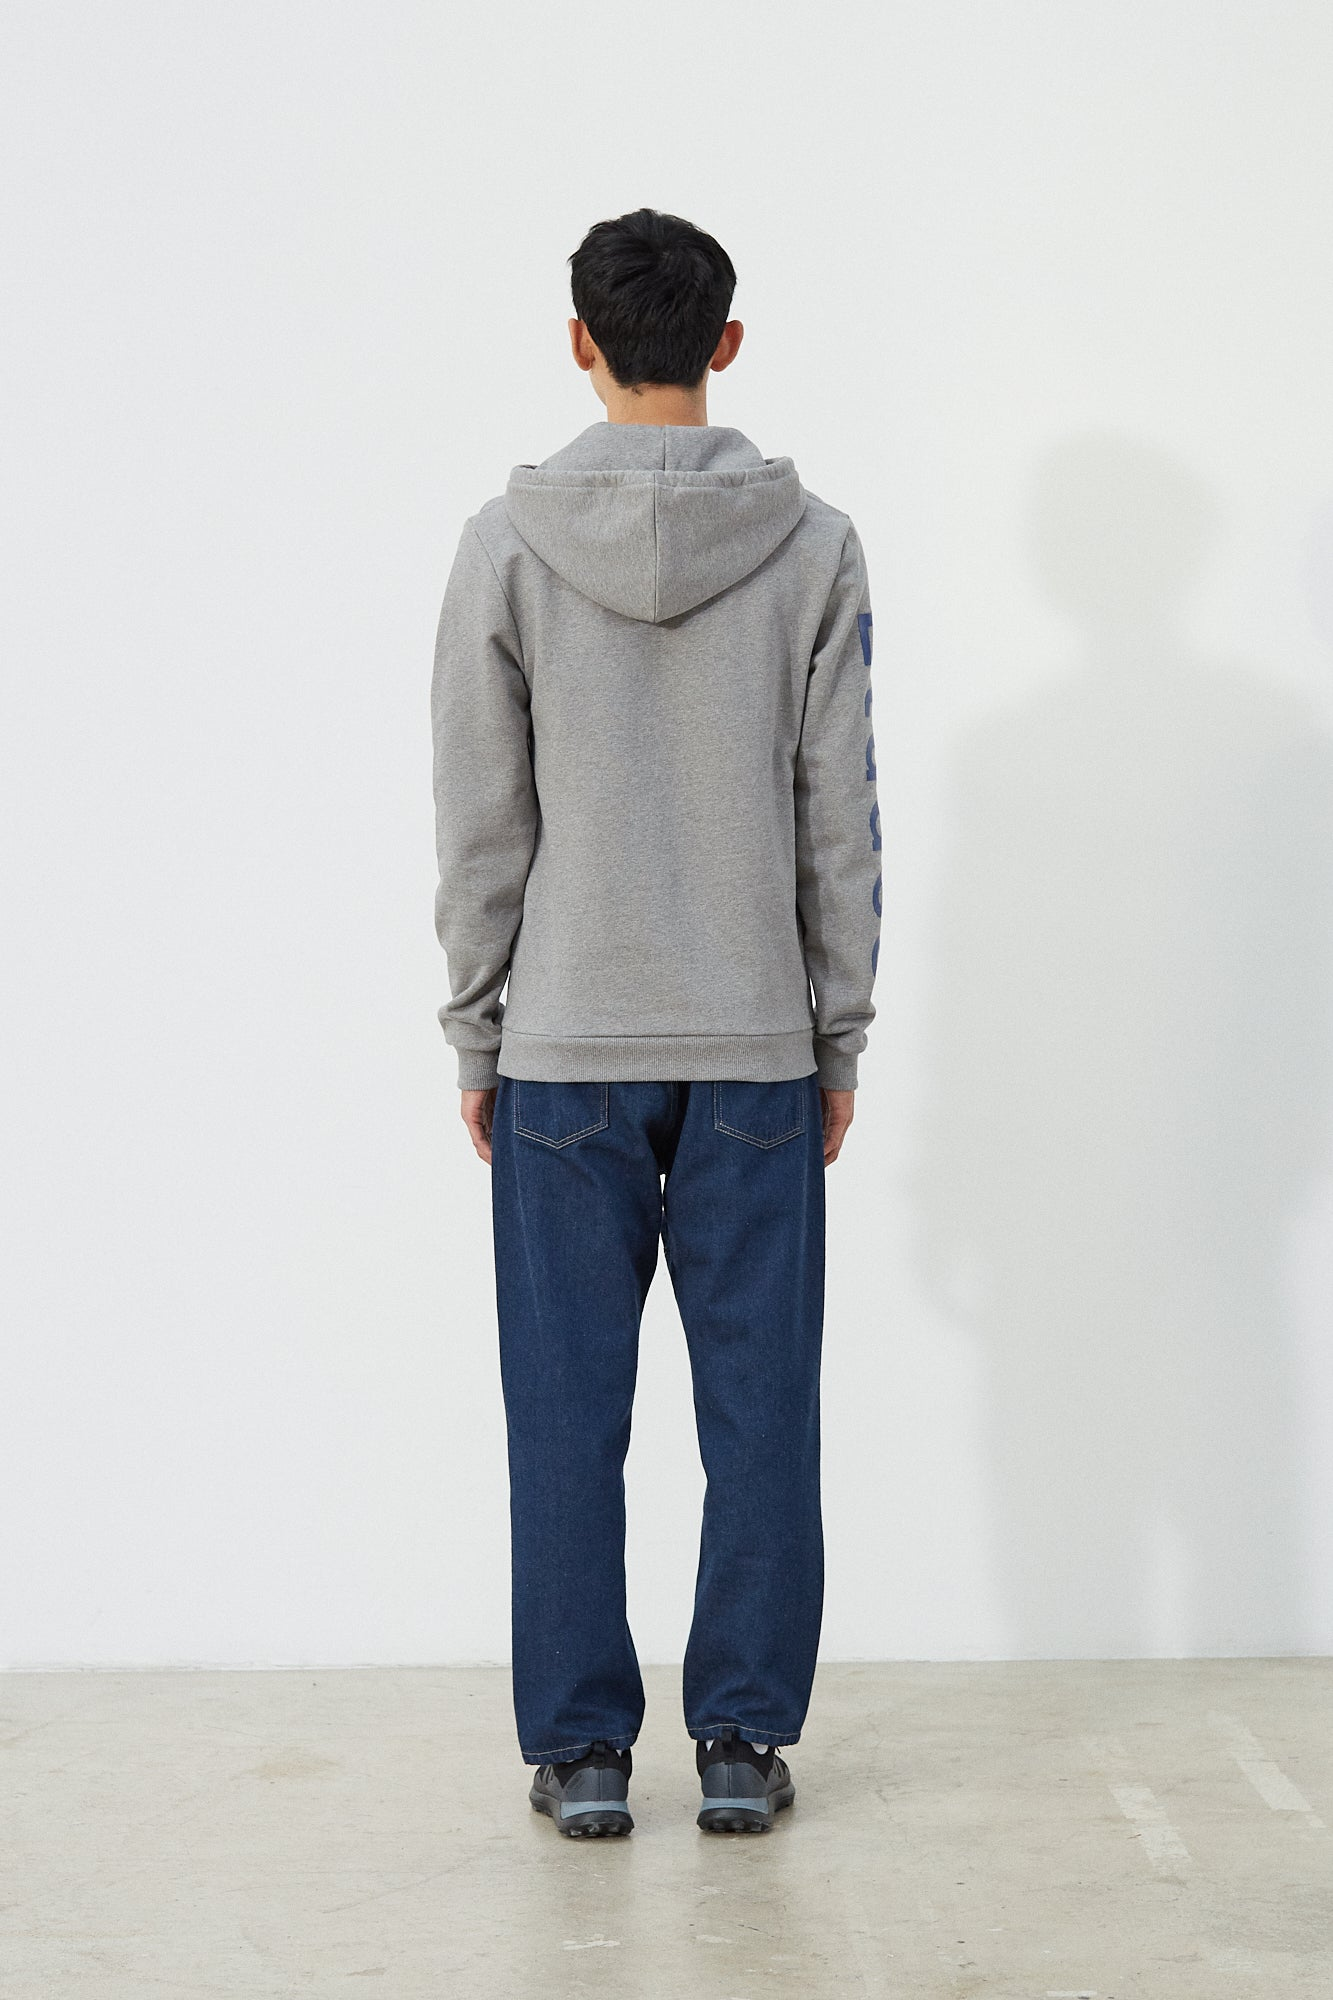 KLEIN ETUDES HEATHER GREY